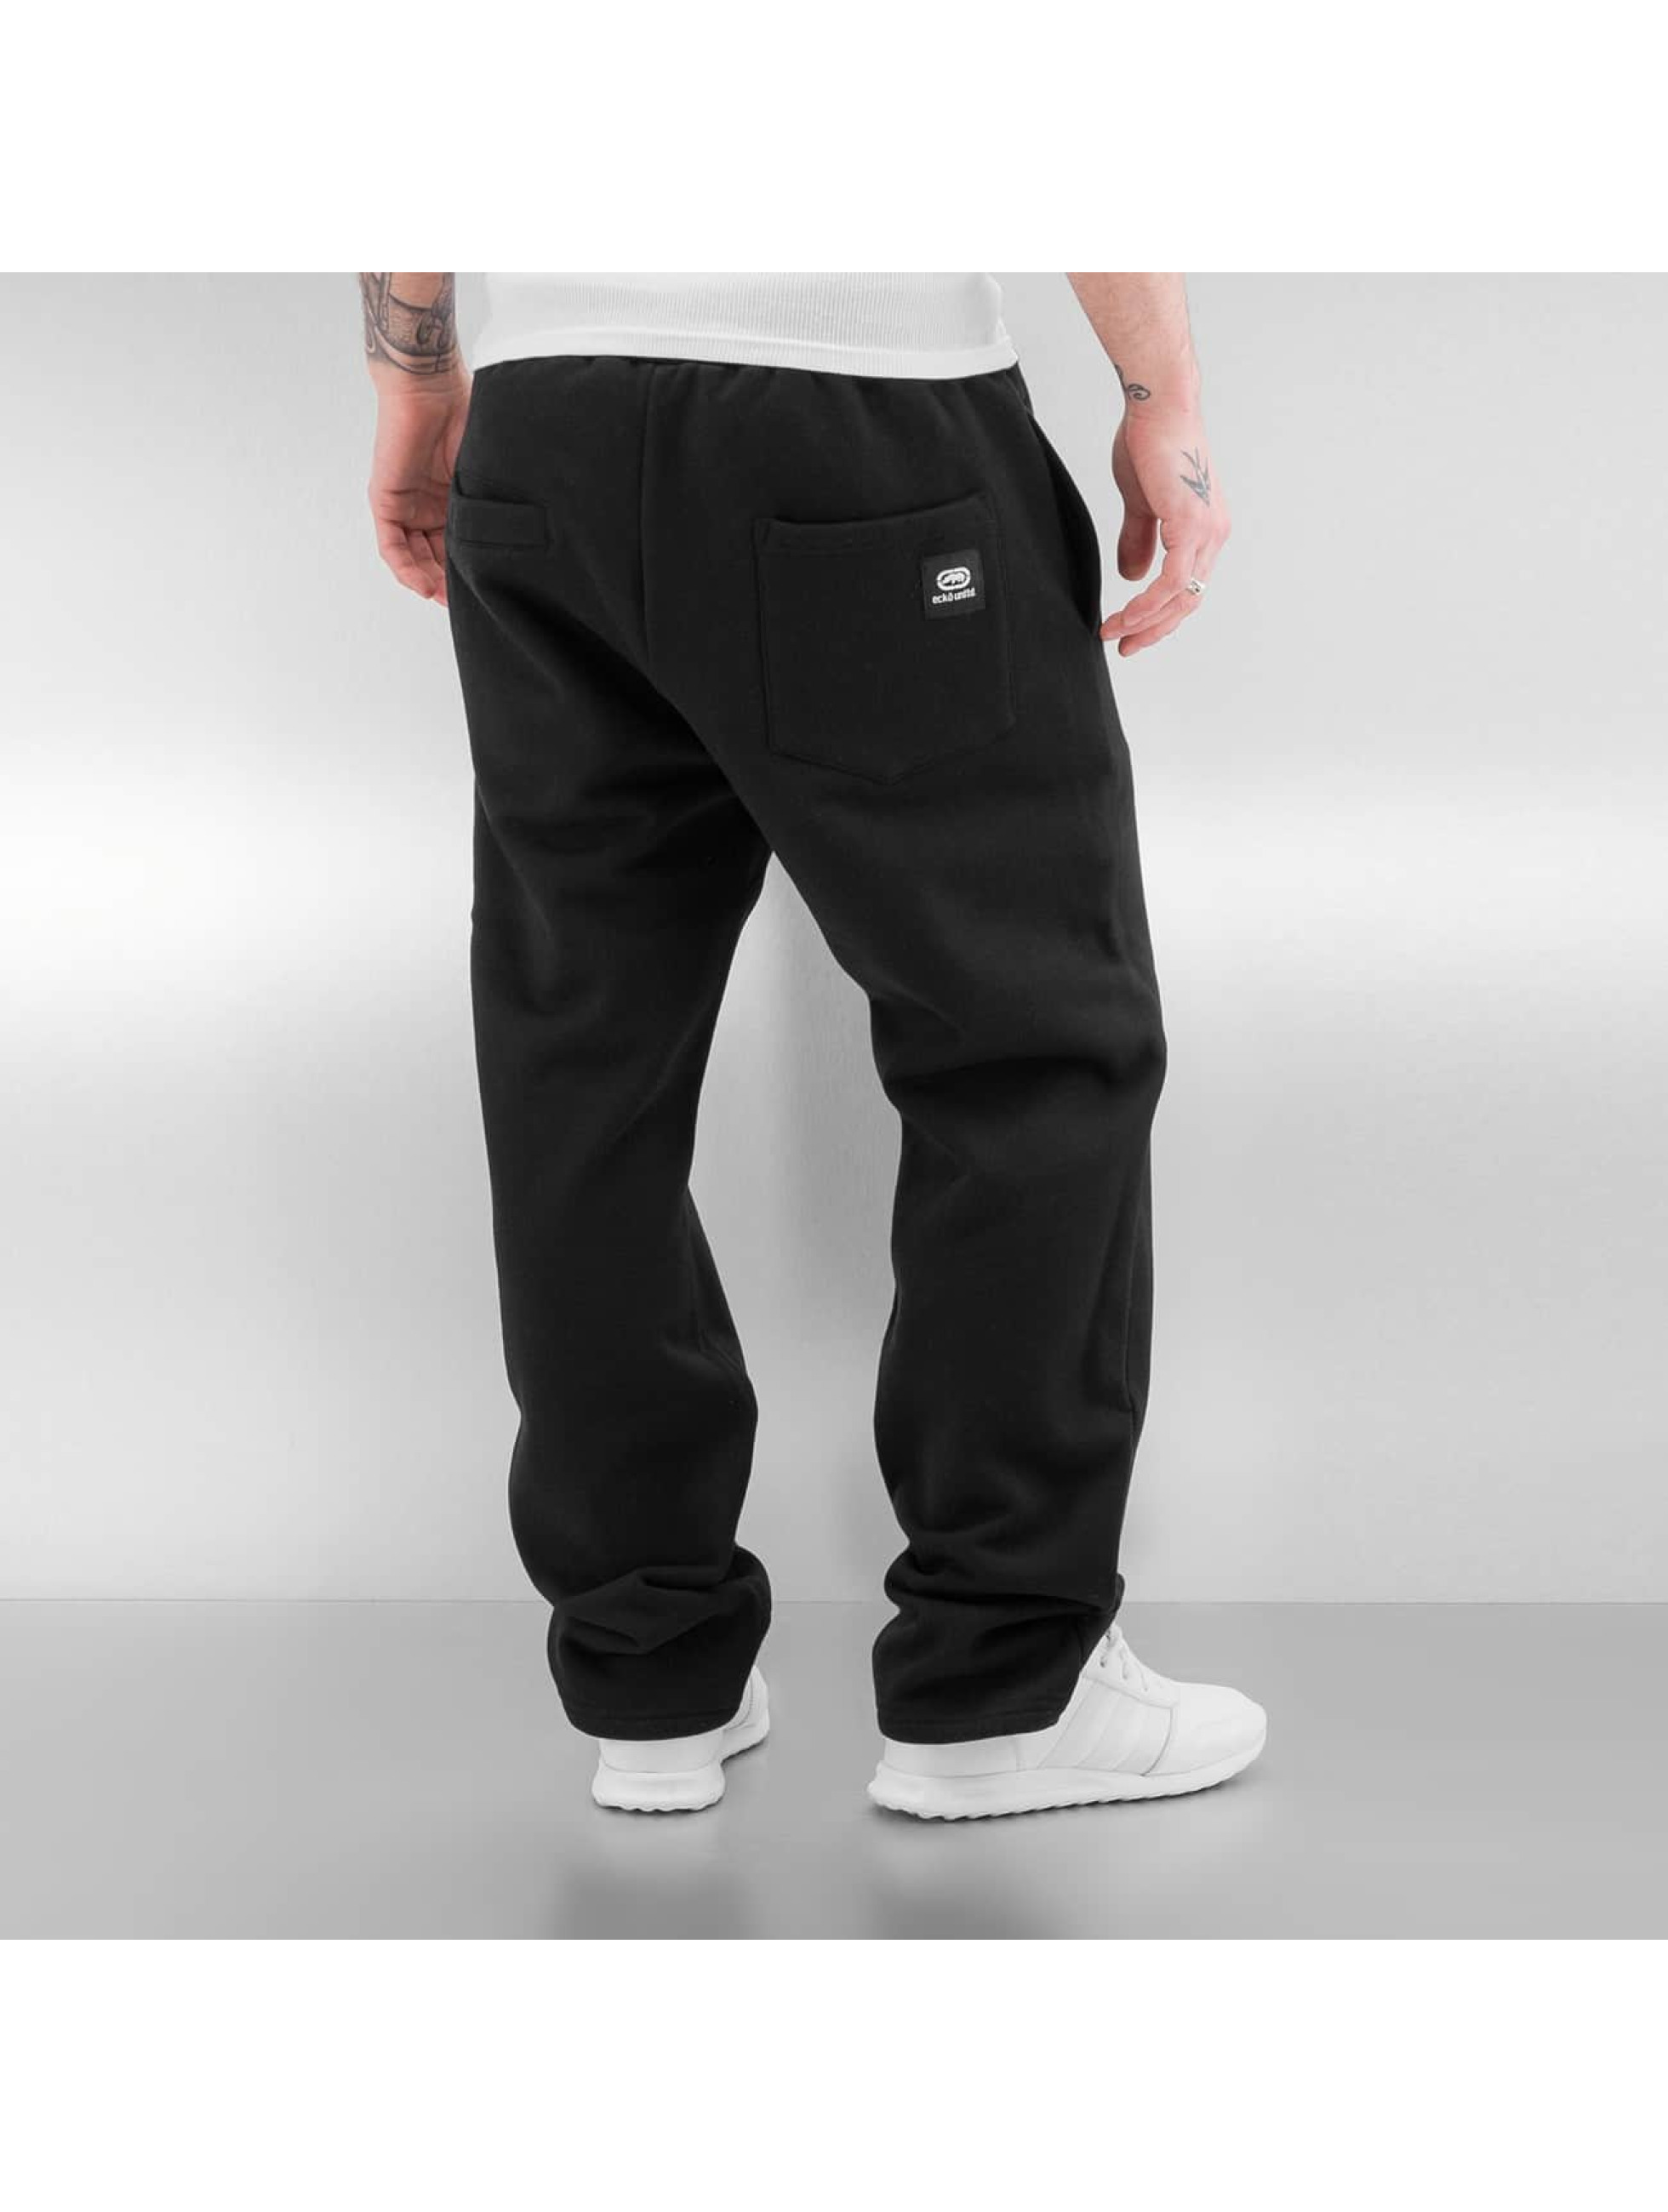 Ecko Unltd. Sweat Pant 1972 black